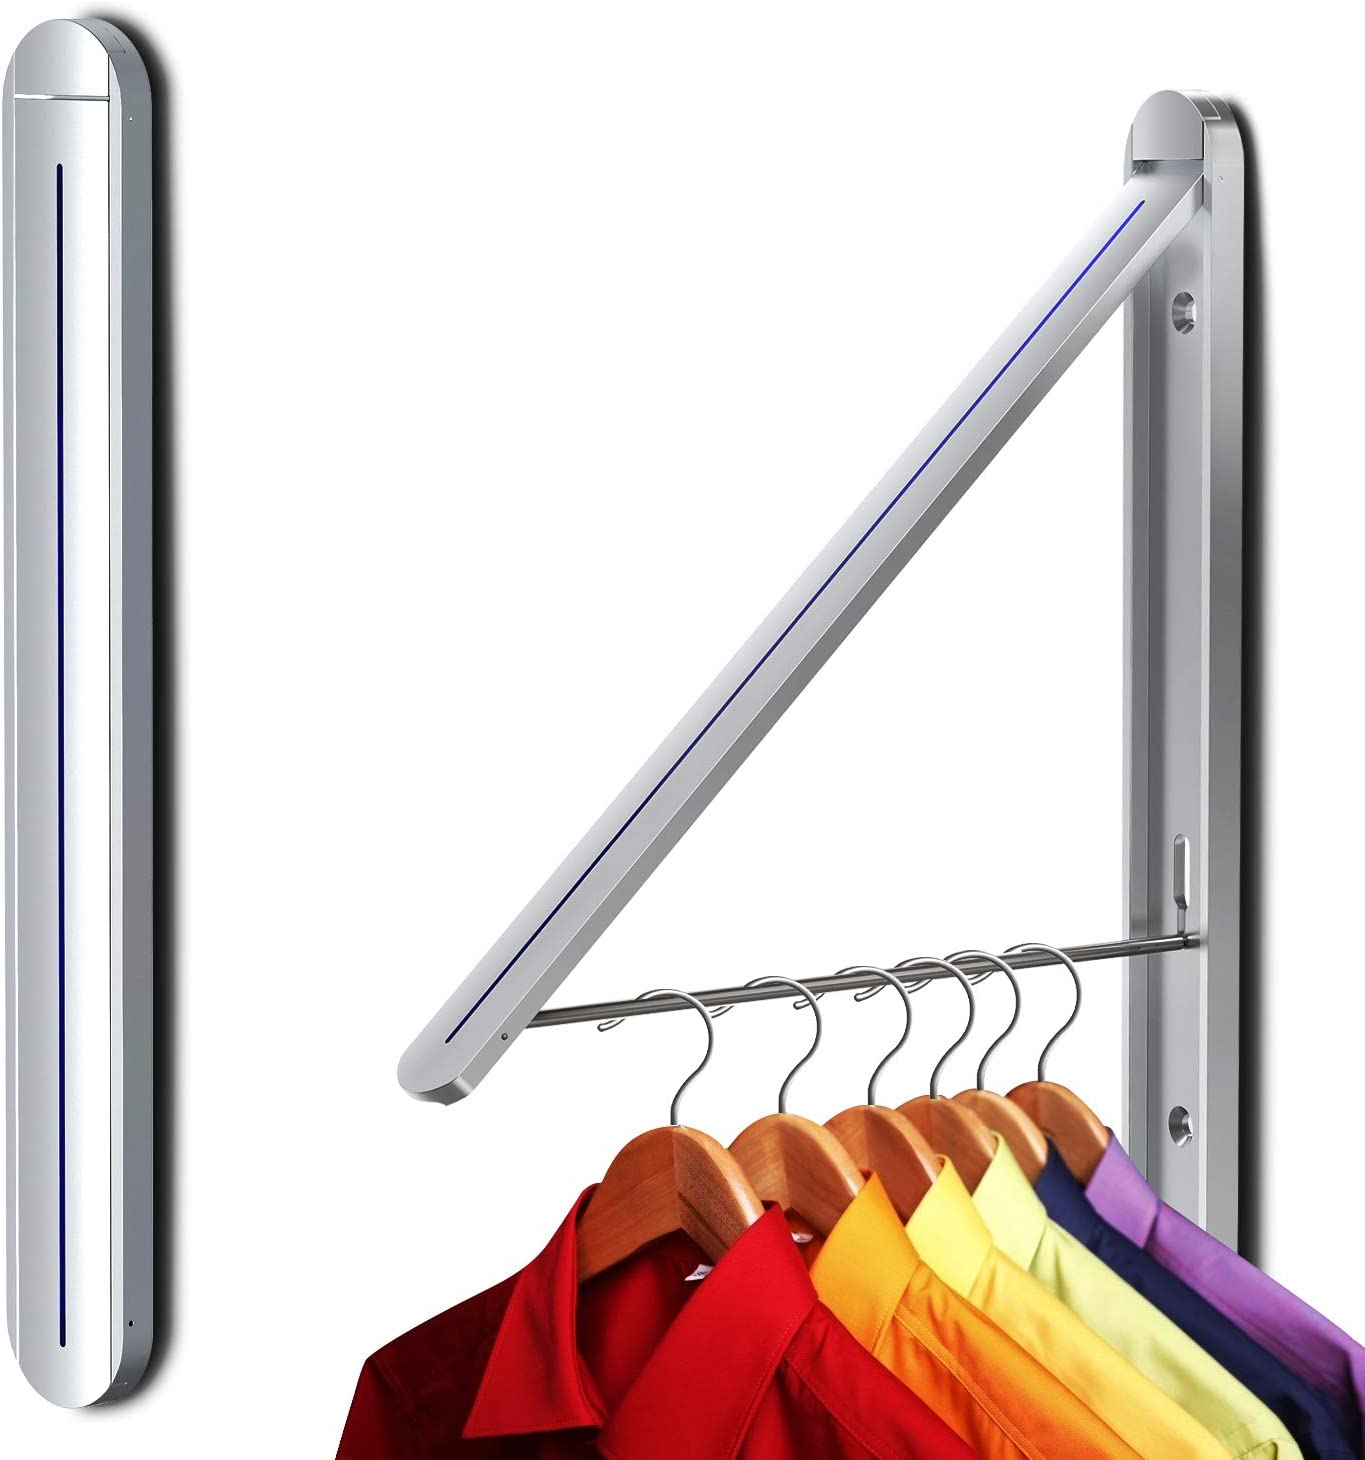 Ithywat Retractable Clothes Rack -Stealth Hangers , Wall Mounted Folding Clothes Hanger Drying Rack for Laundry Room Aluminum, Wall Decoration Hangers Silver